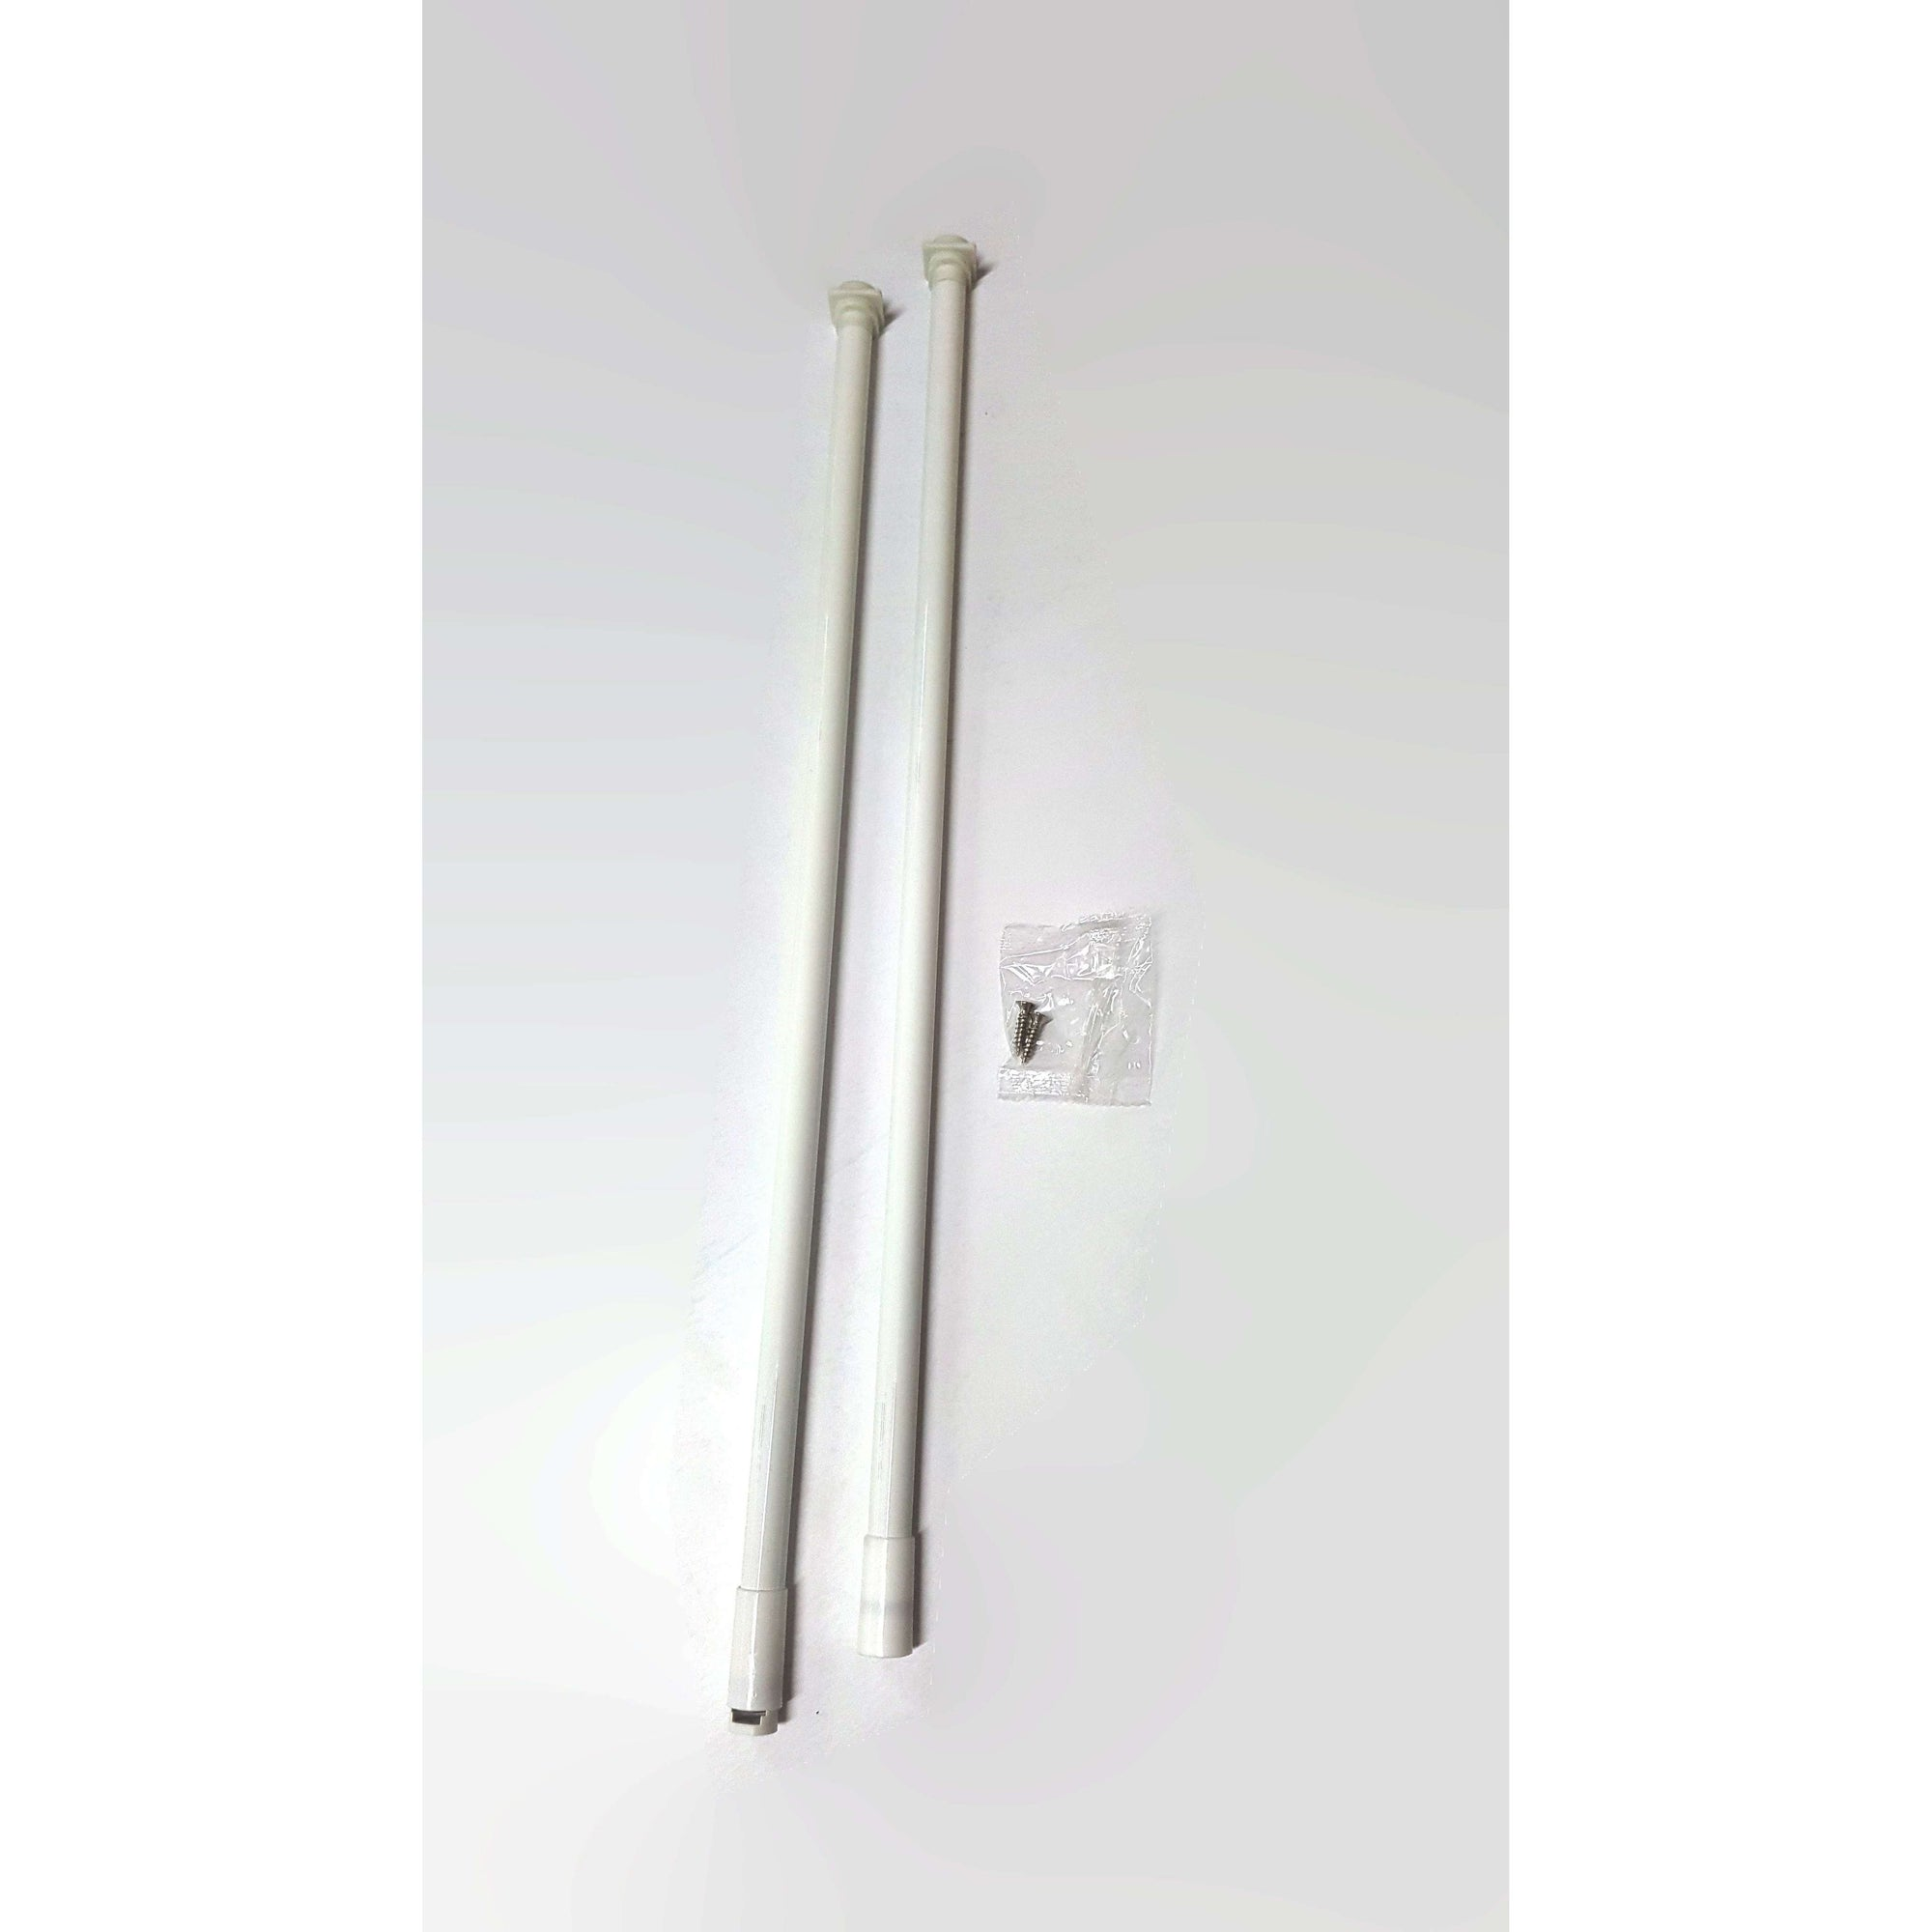 EXCEL - DTC 450mm Side Rod for D/F S (White)